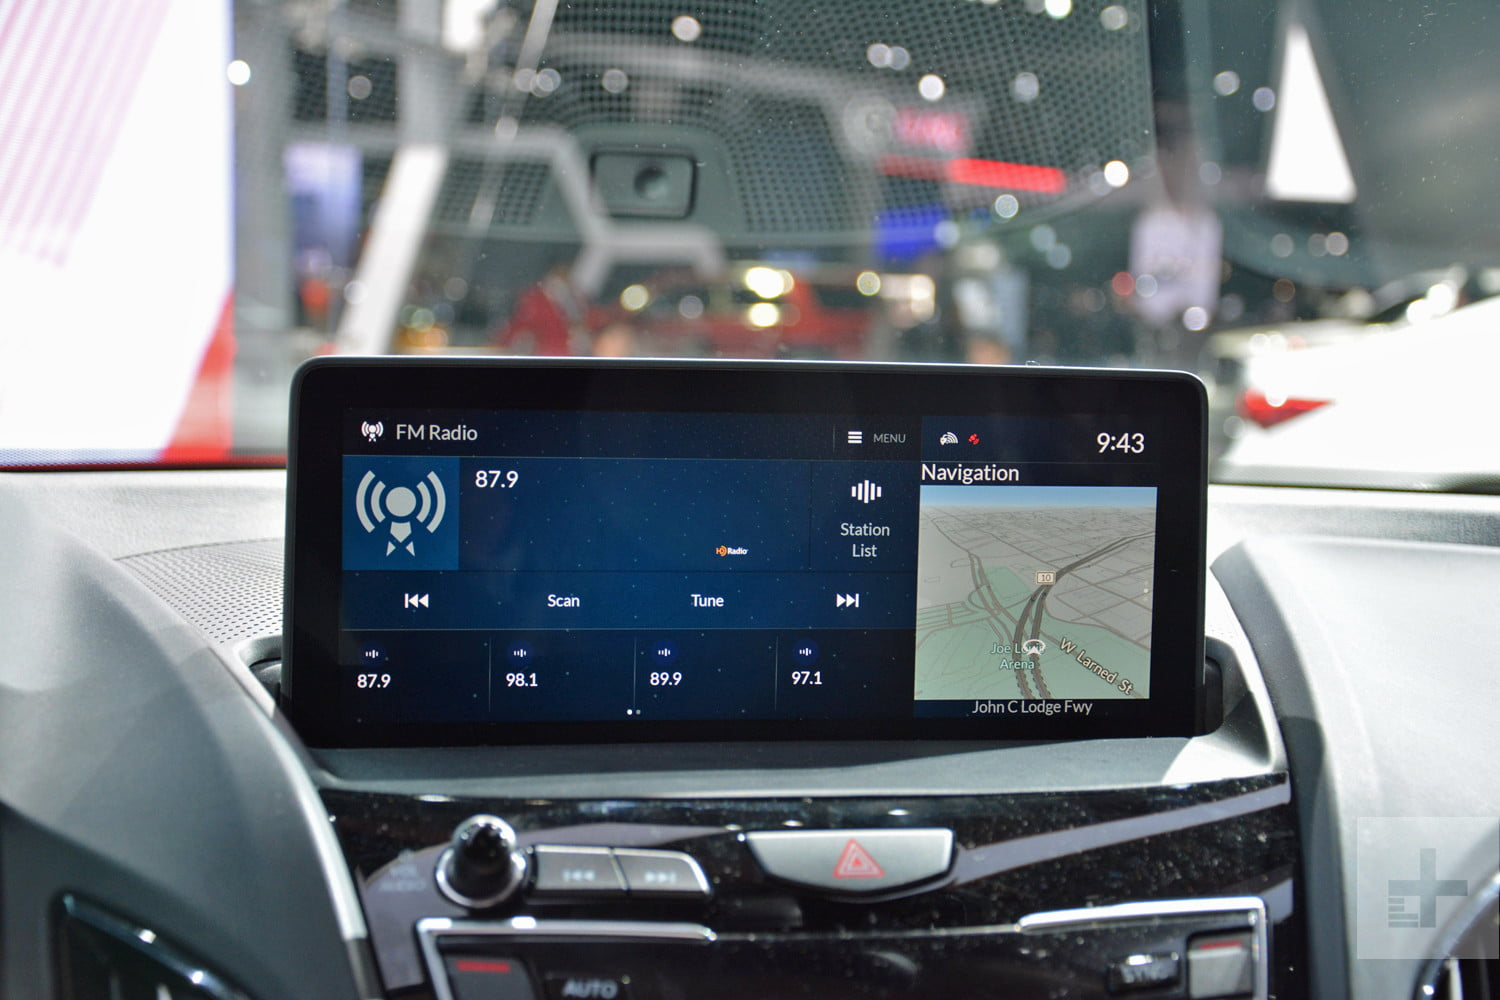 acura true touchpad infotainment system review rg rdx prototype 5